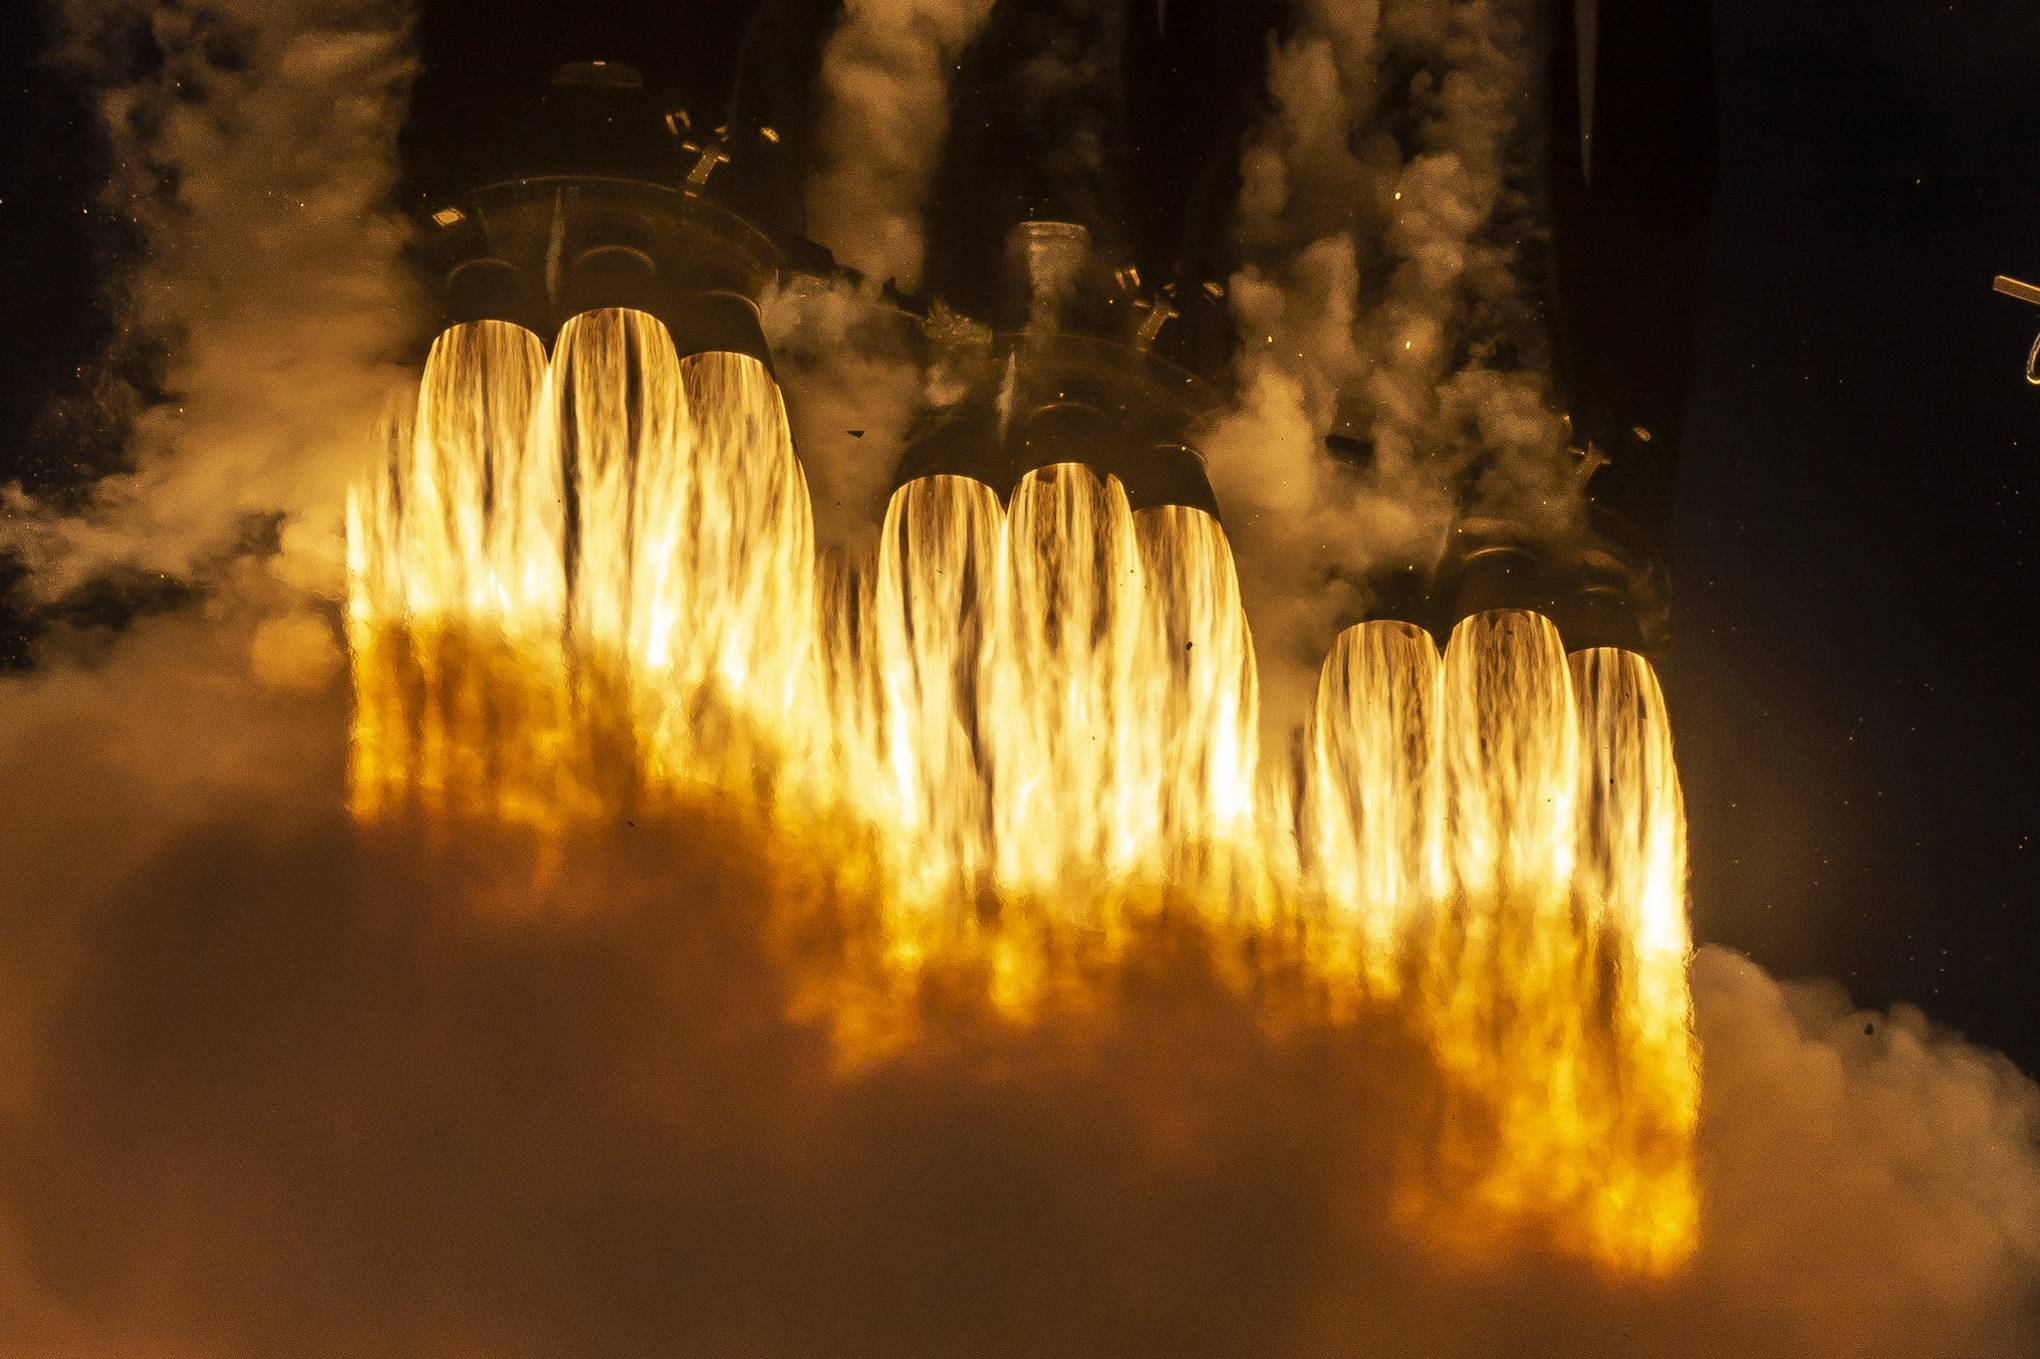 The wild physics of Elon Musk's methane-guzzling super-rocket